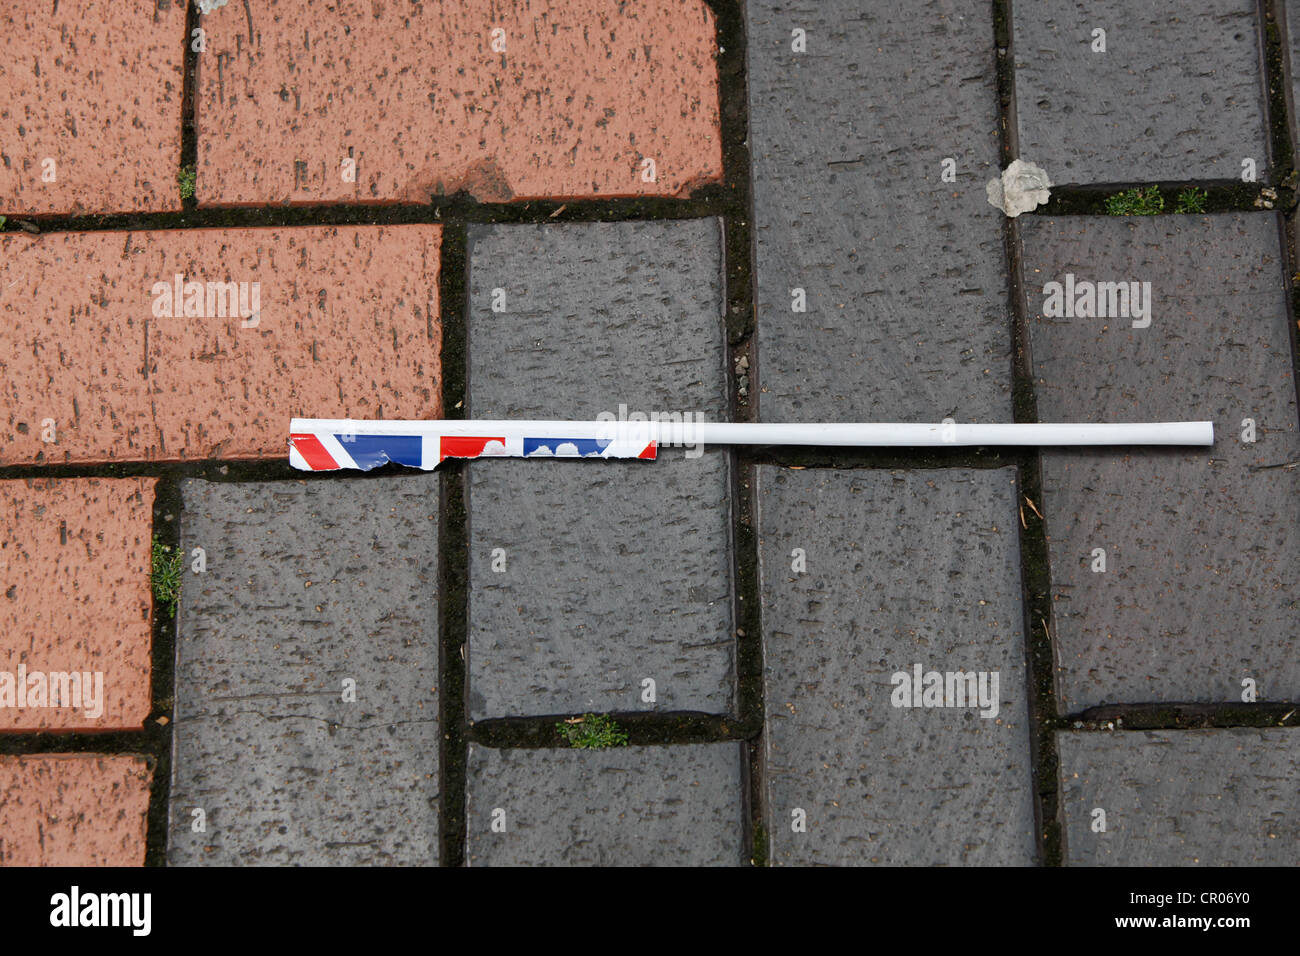 Remnants of a torn Union Jack flag discarded in block paved city center public area. - Stock Image